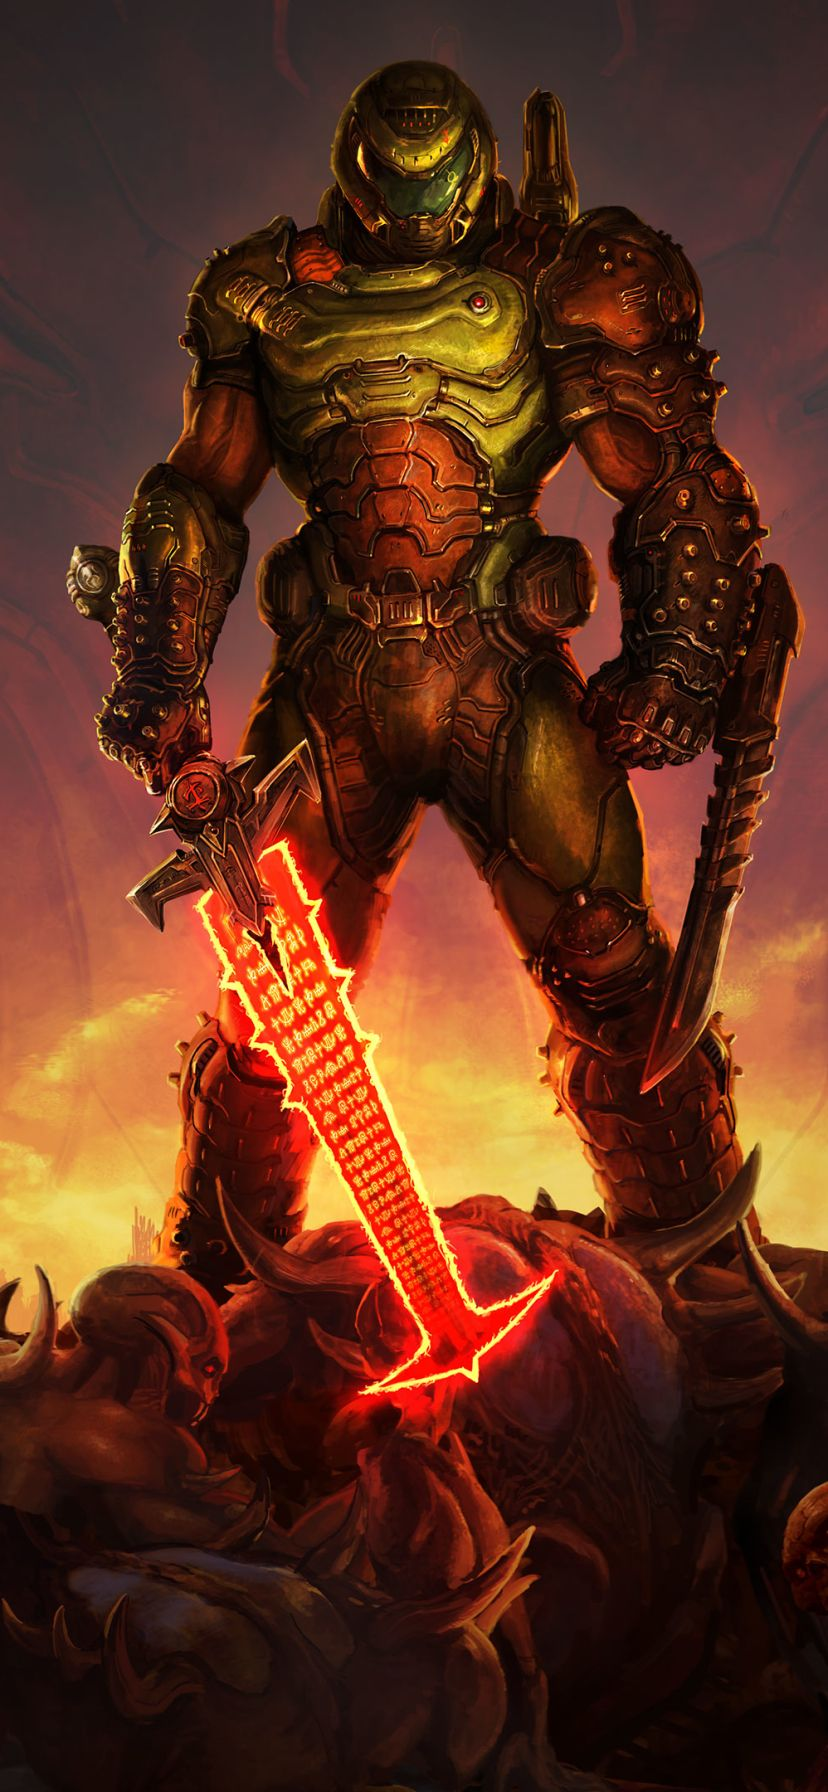 Doom Eternal Mobile Wallpaper In 2020 Doom Demons Doom Doom Game